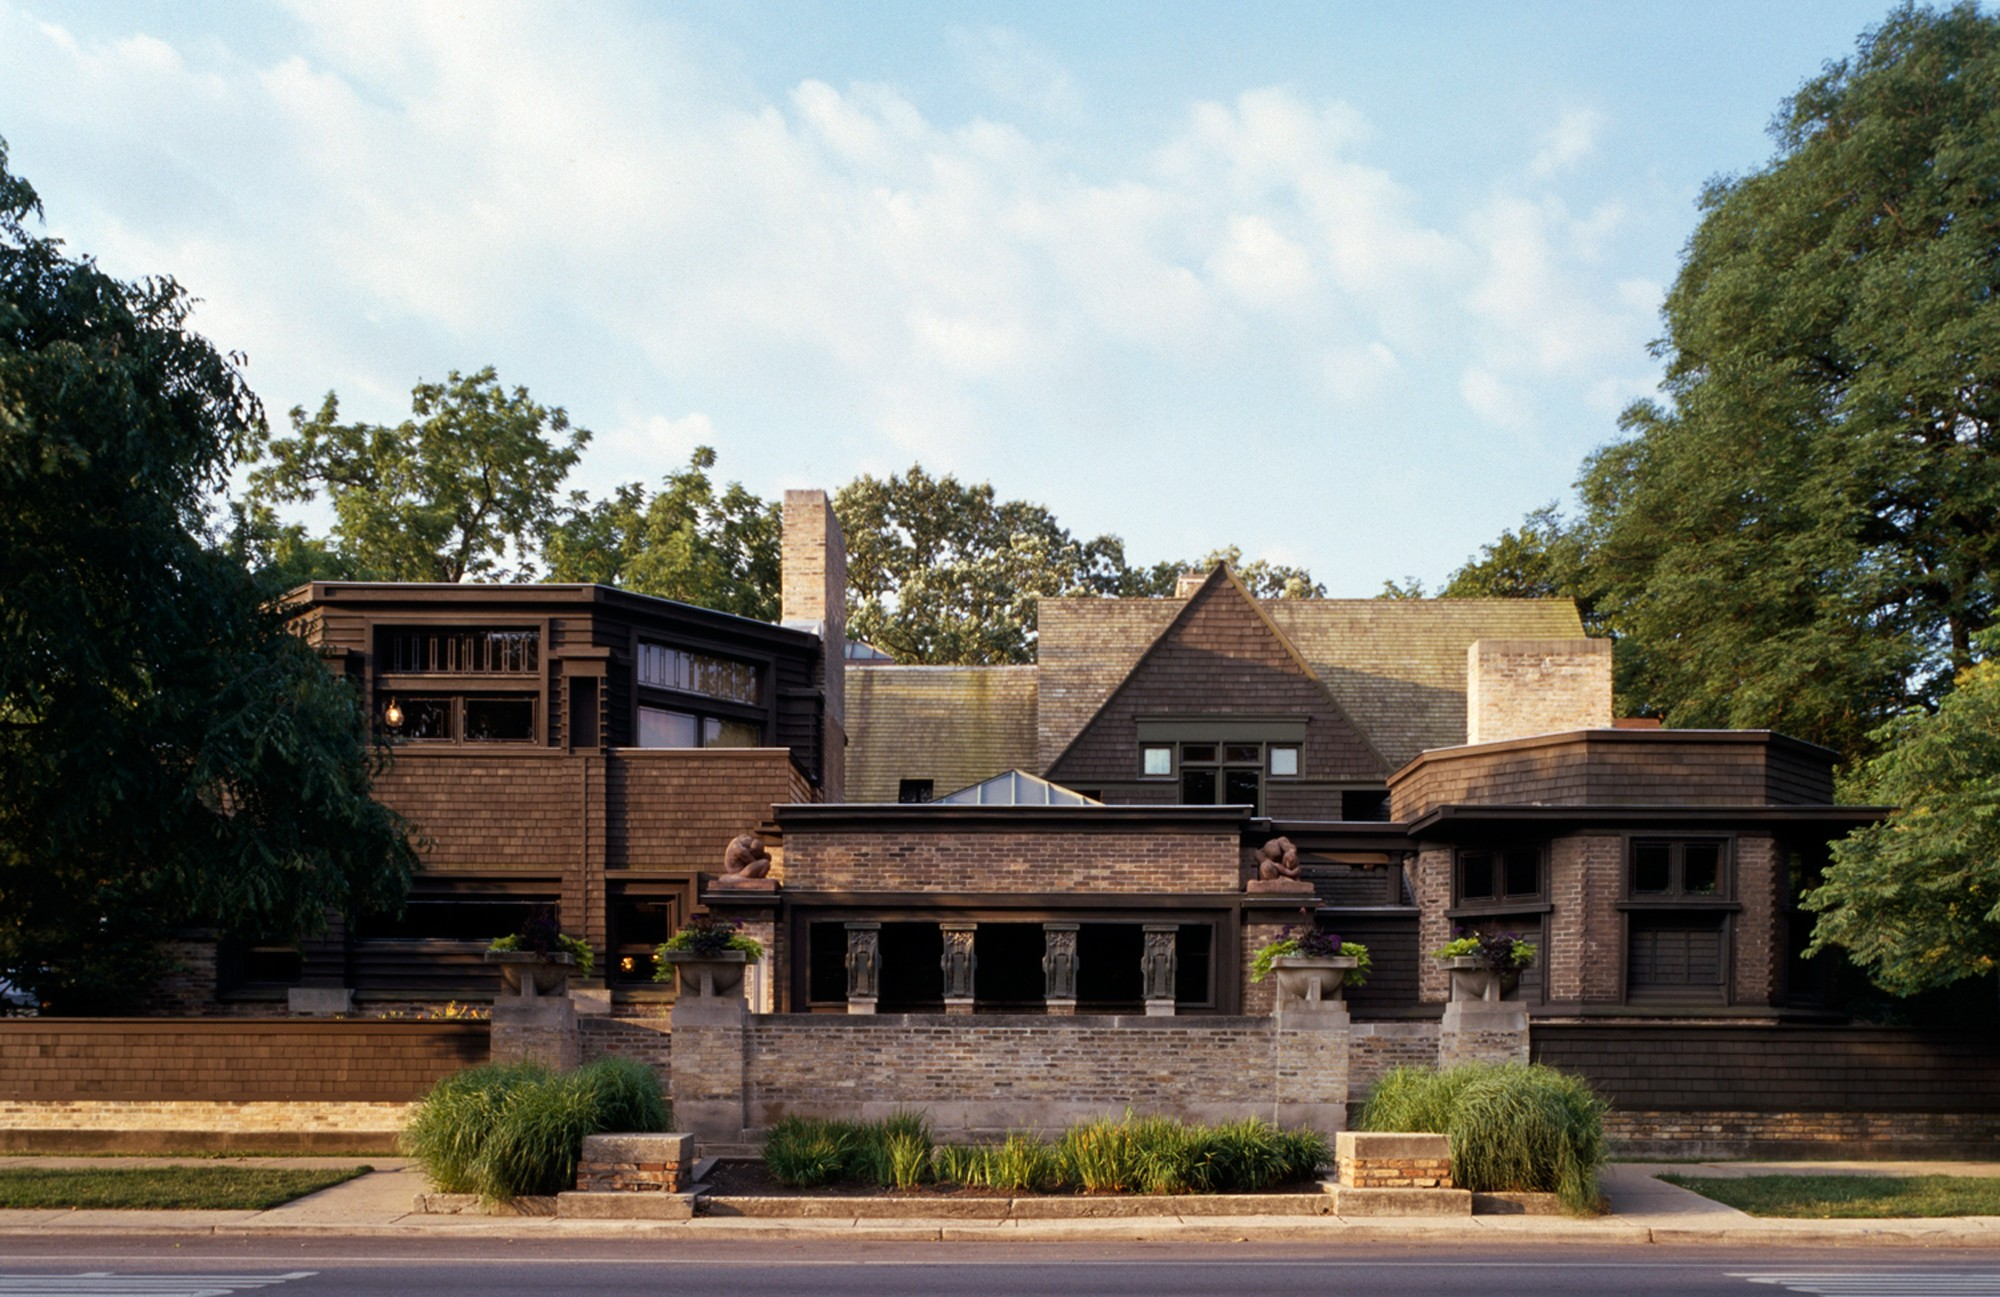 Frank lloyd wright home studio buildings of chicago - Frank lloyd wright architecture ...